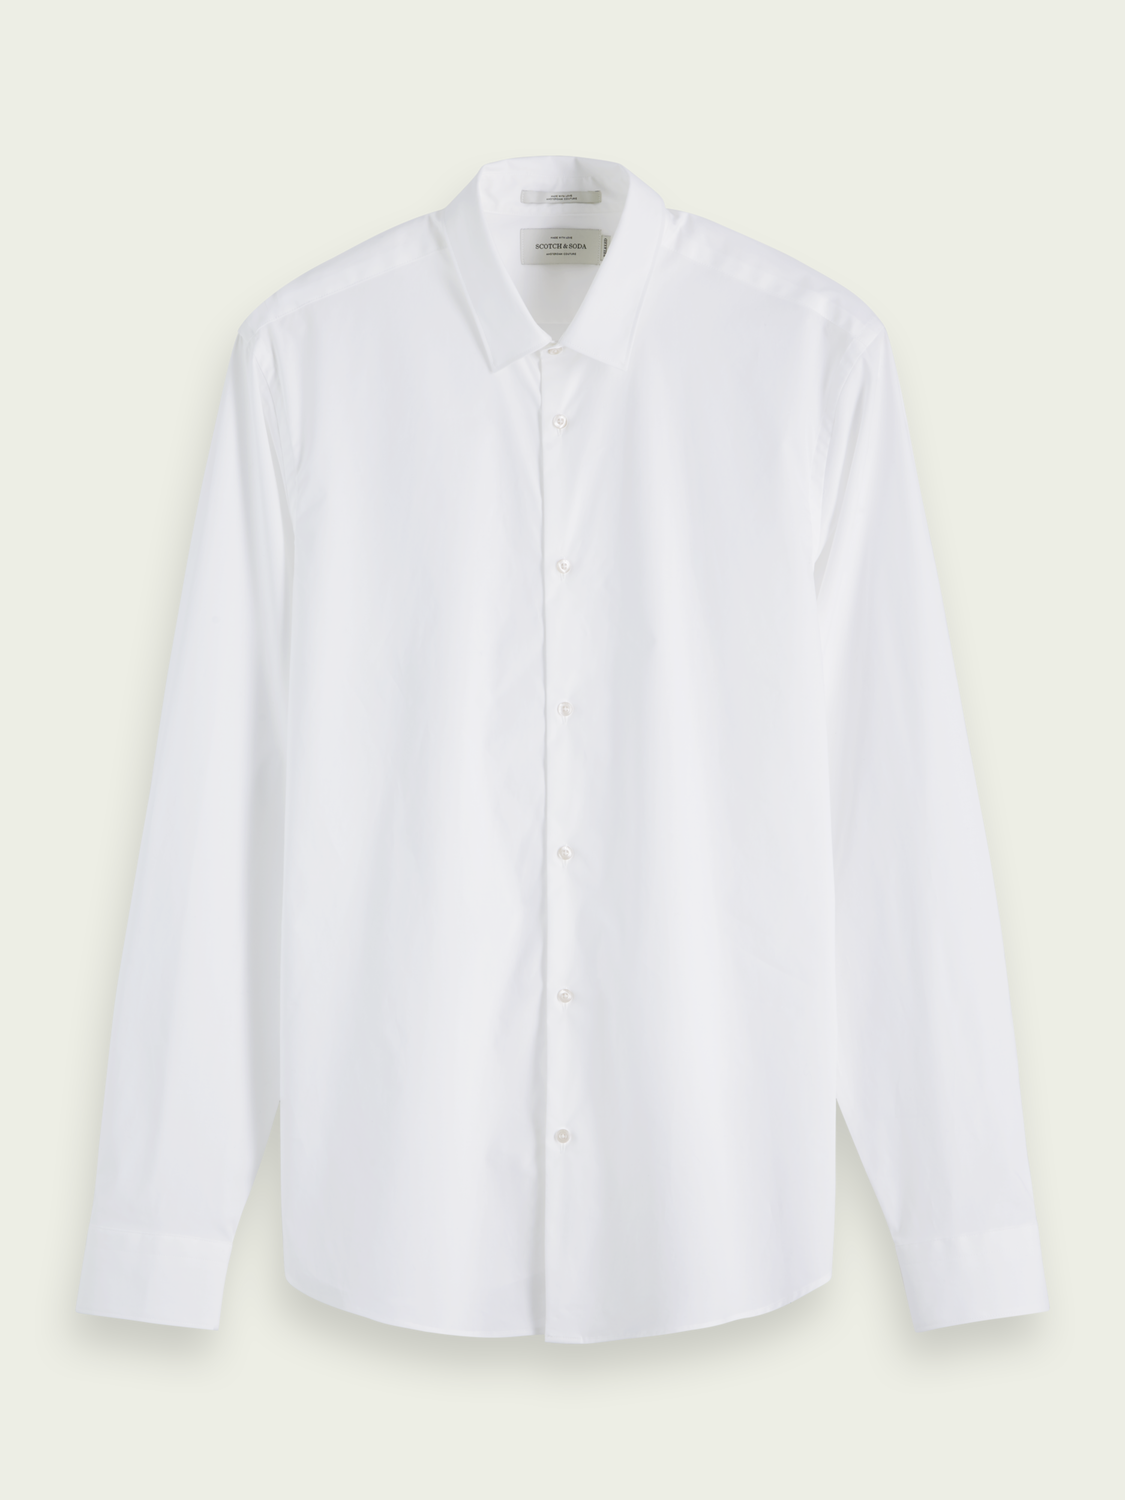 Herren Klassisches Shirt | Relaxed Fit